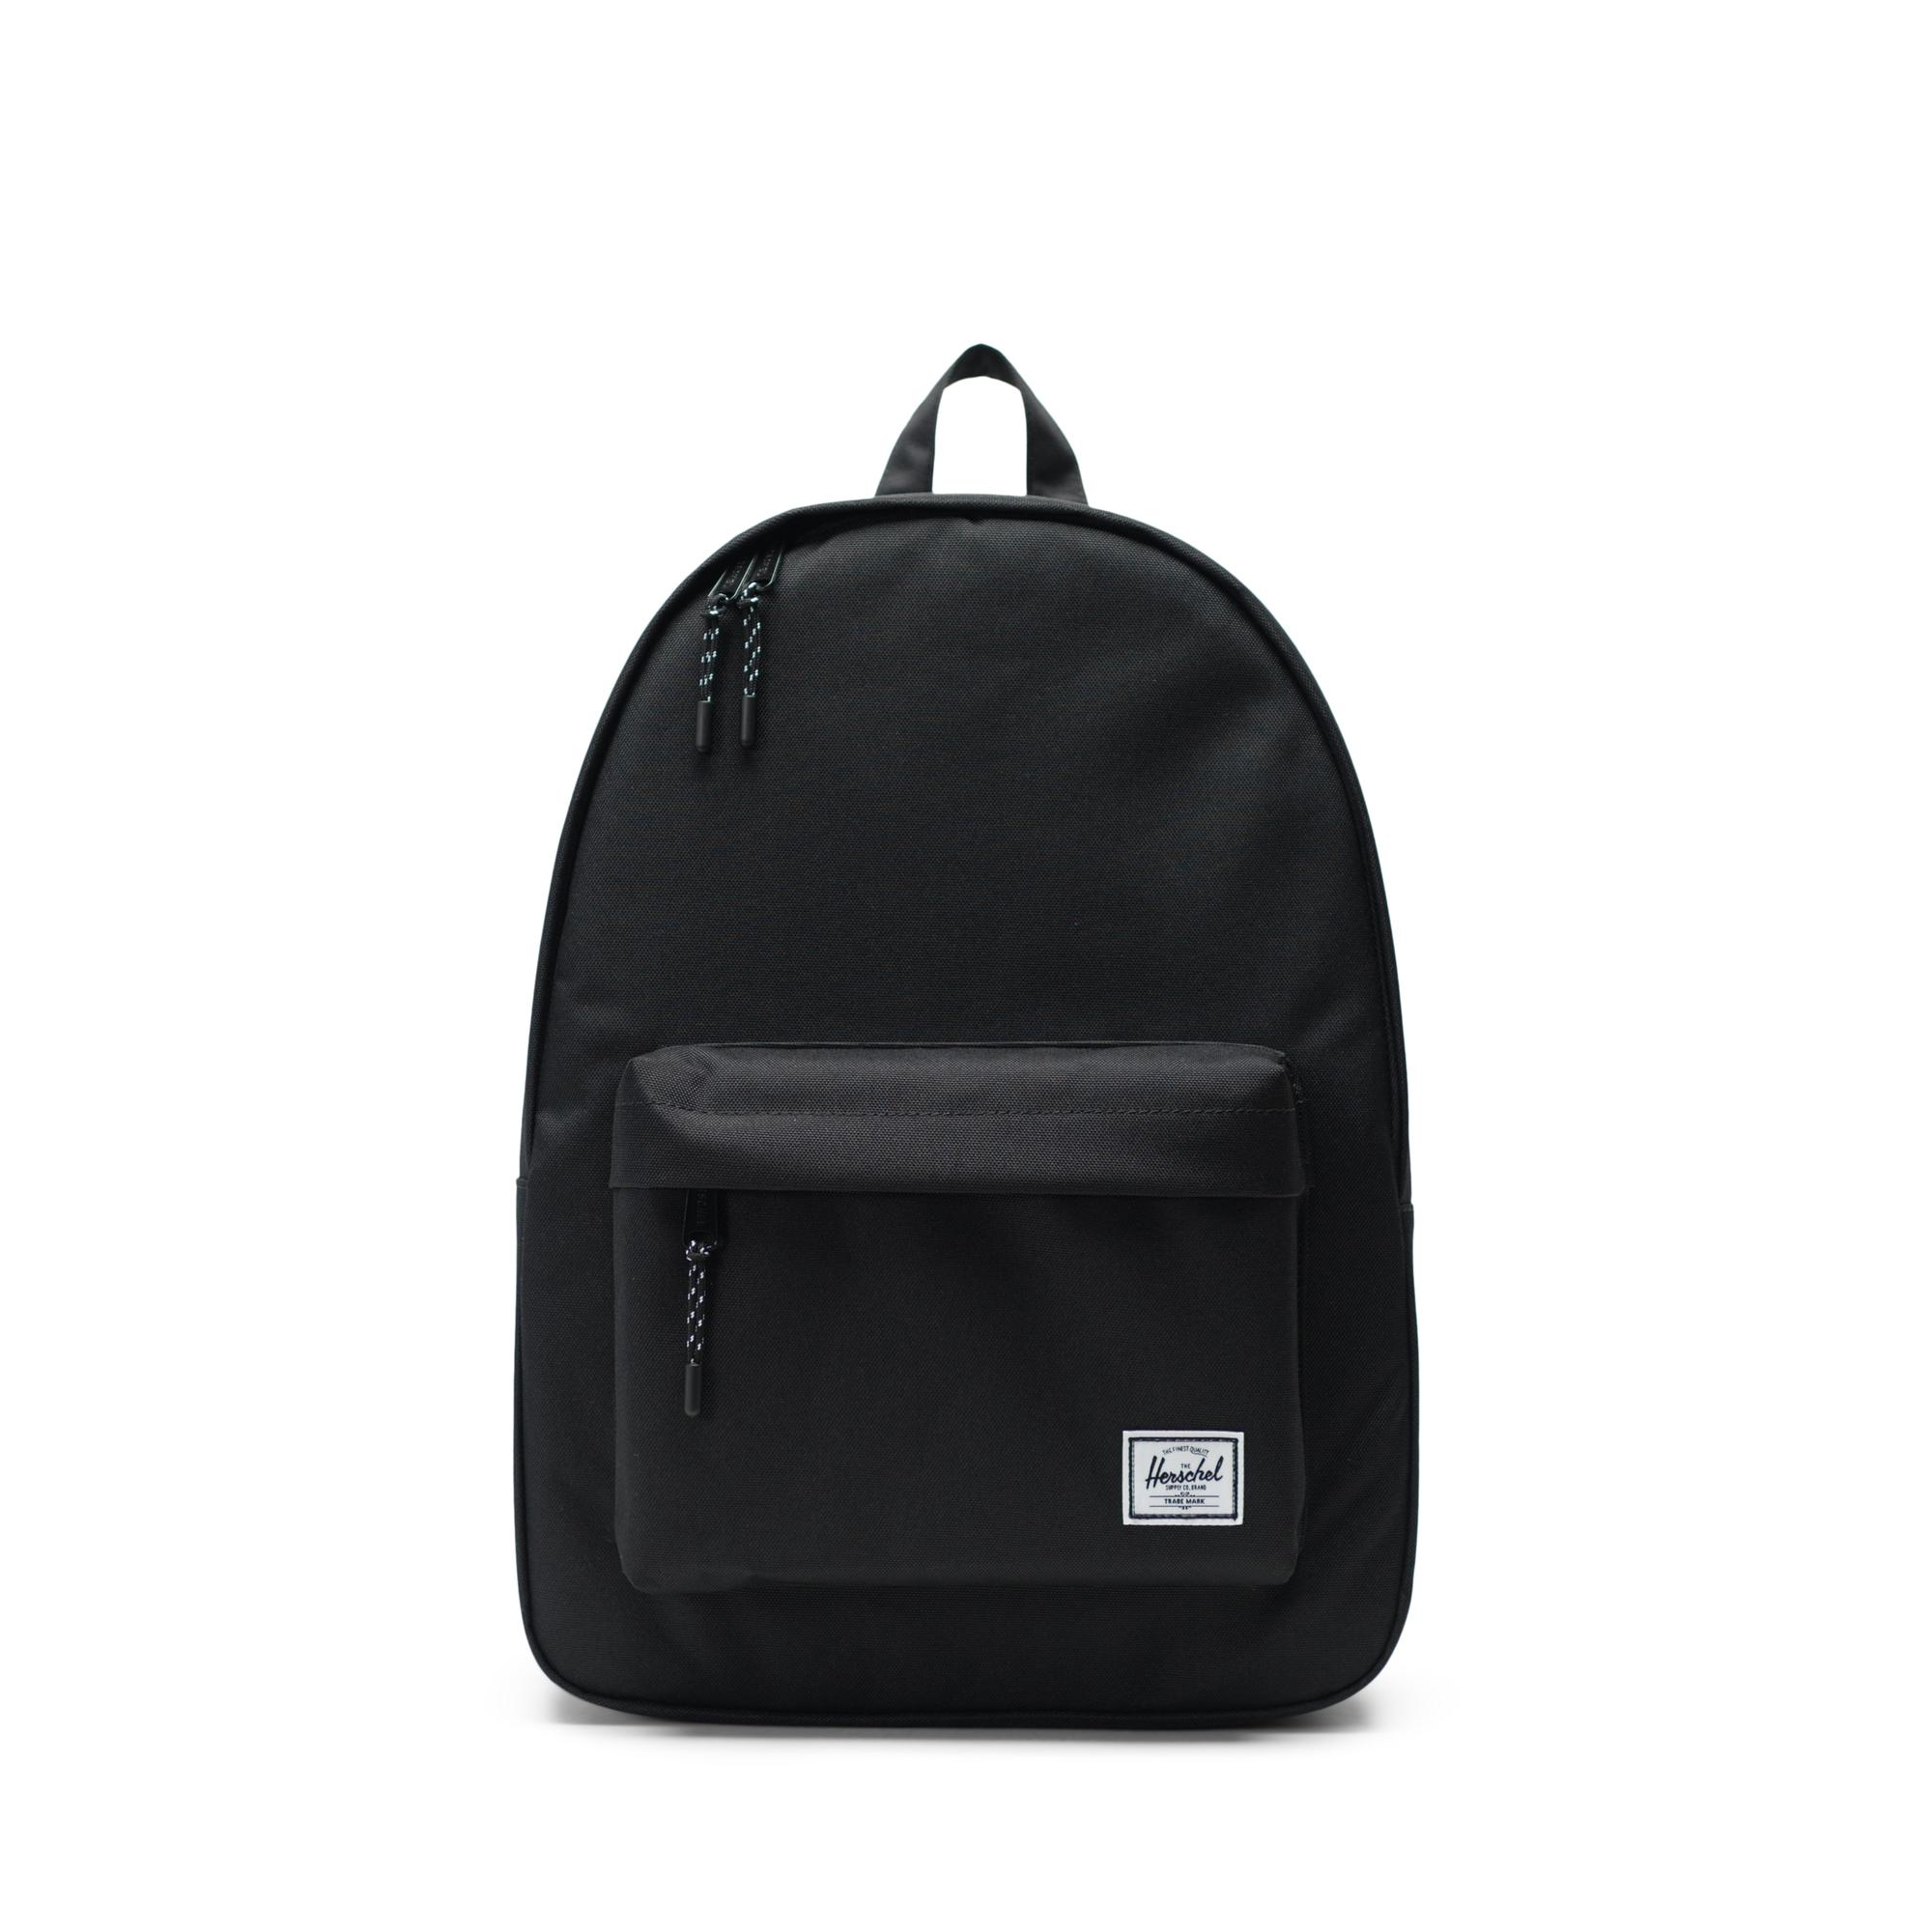 7217cd163e6e8 Classic Backpack | Herschel Supply Company